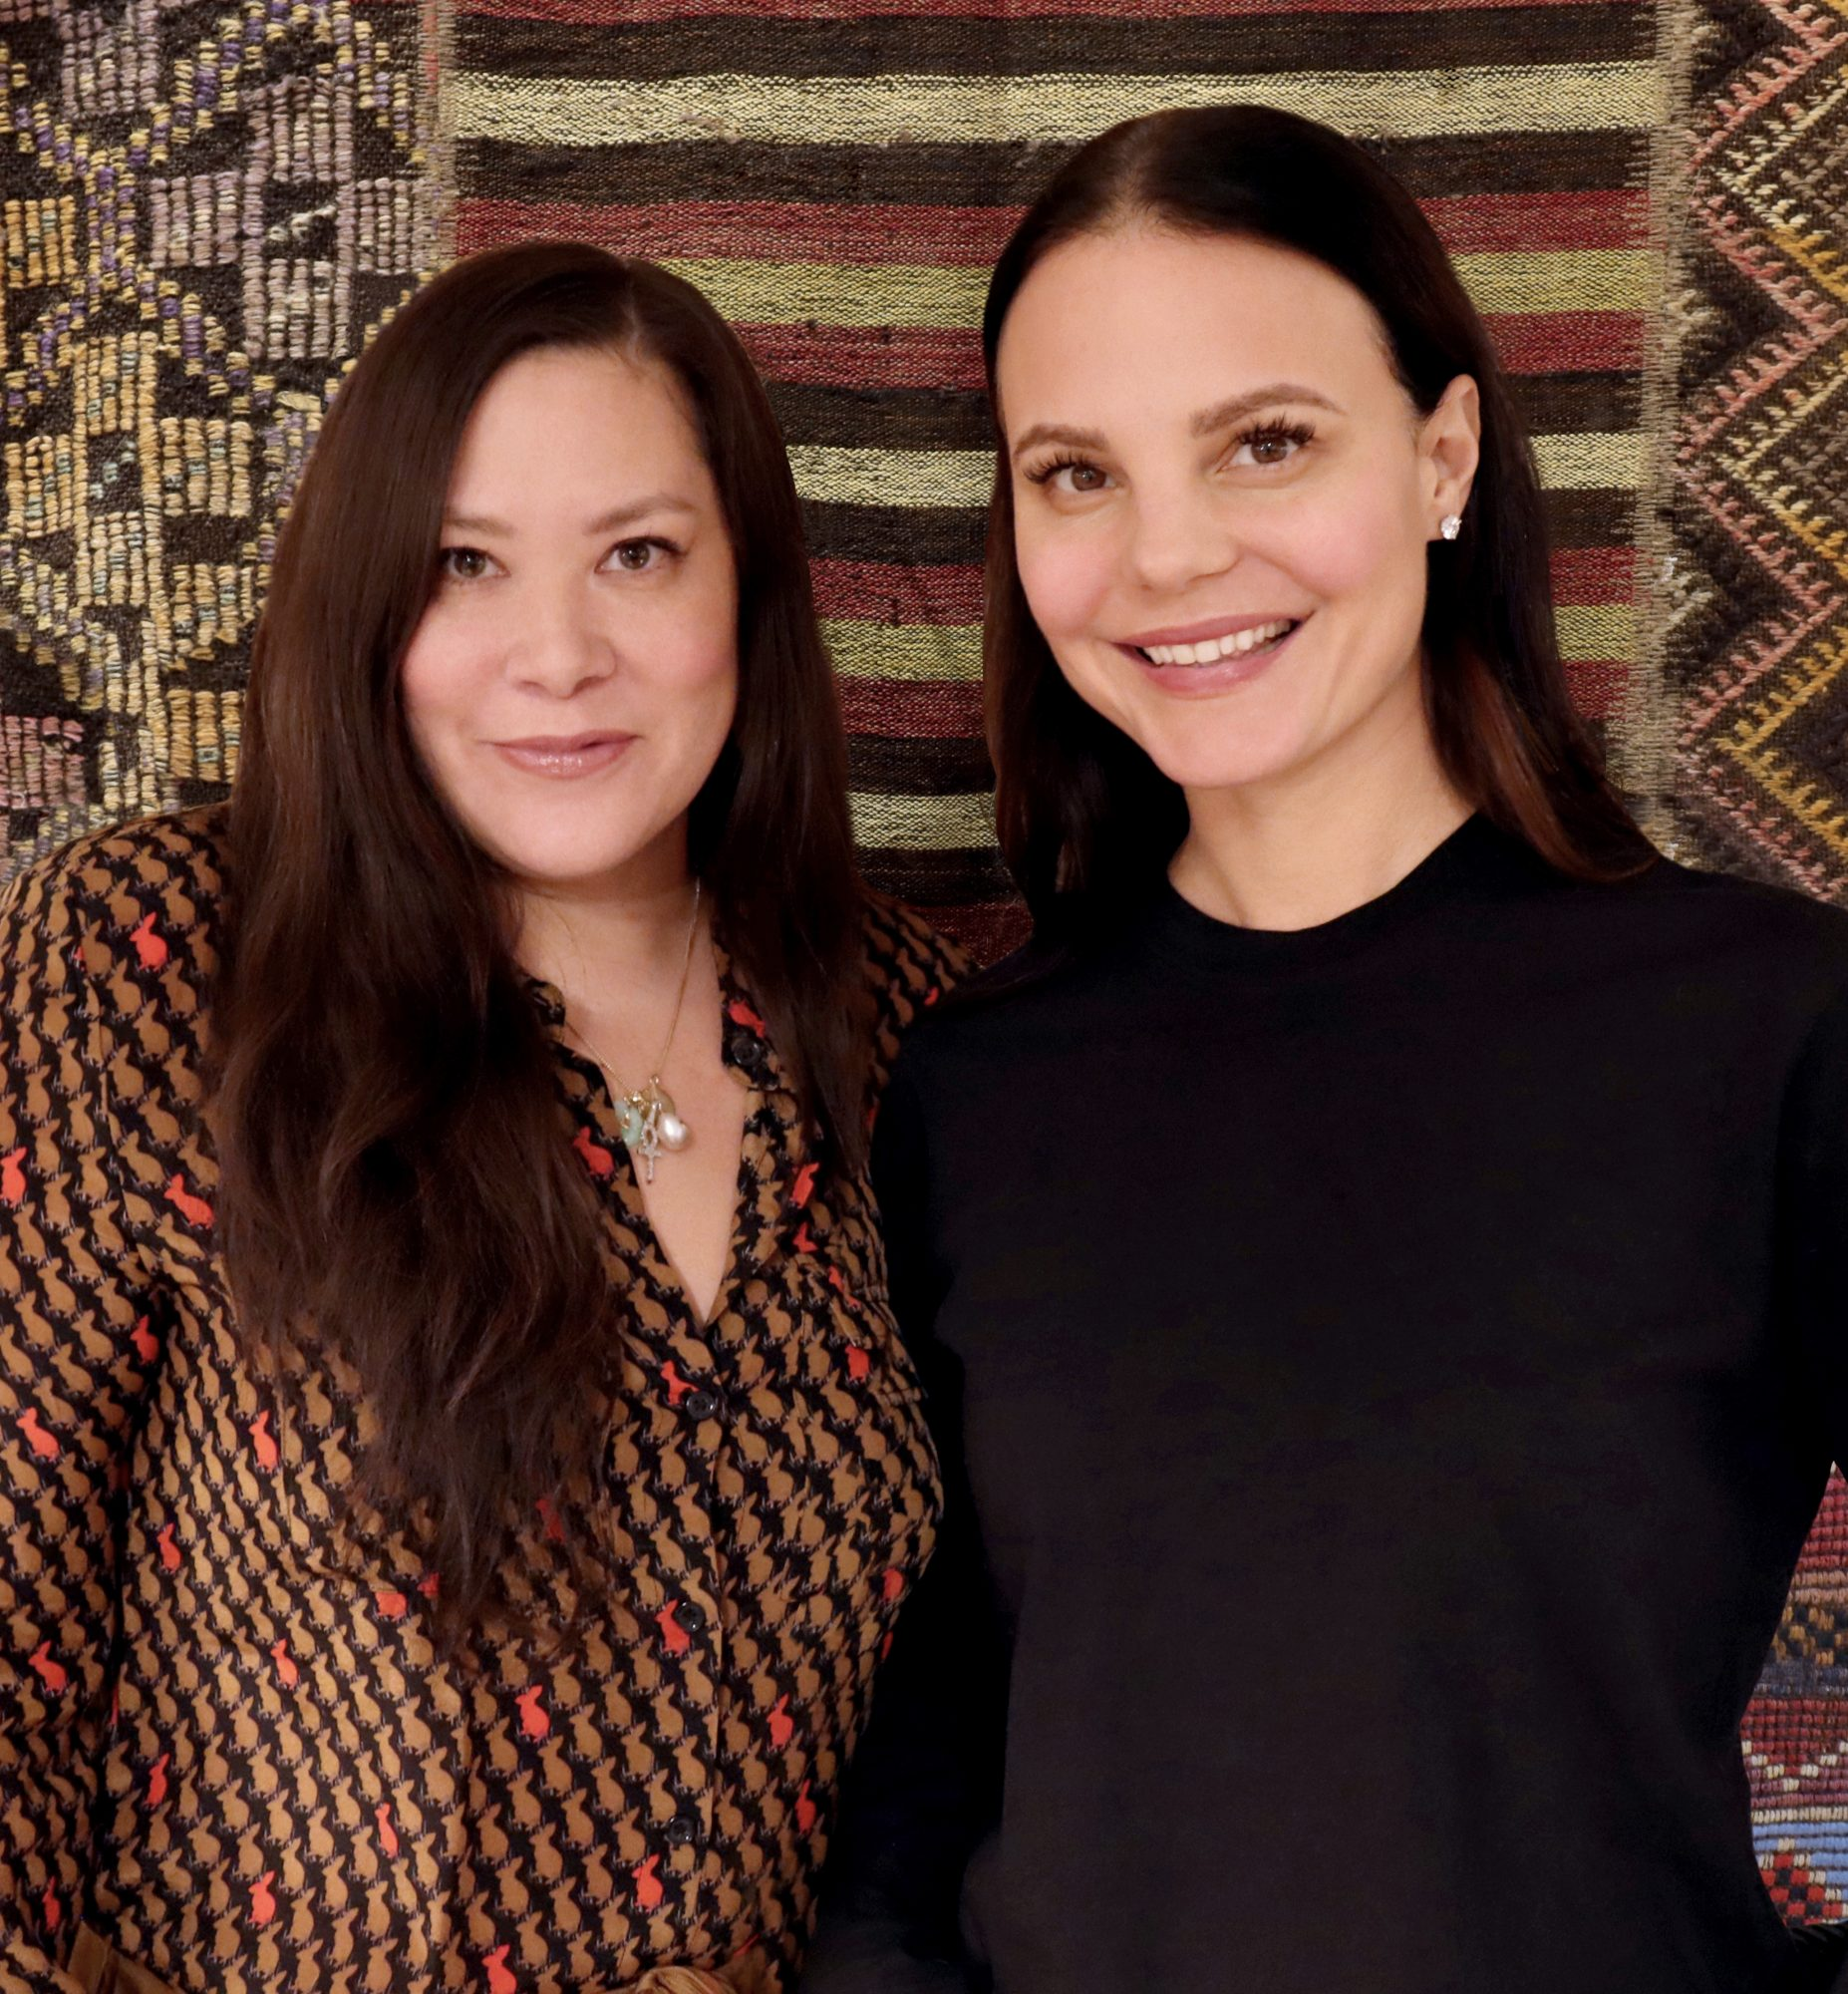 Minya Quirk and Deirdre Maloney Shoppe Object co-founders